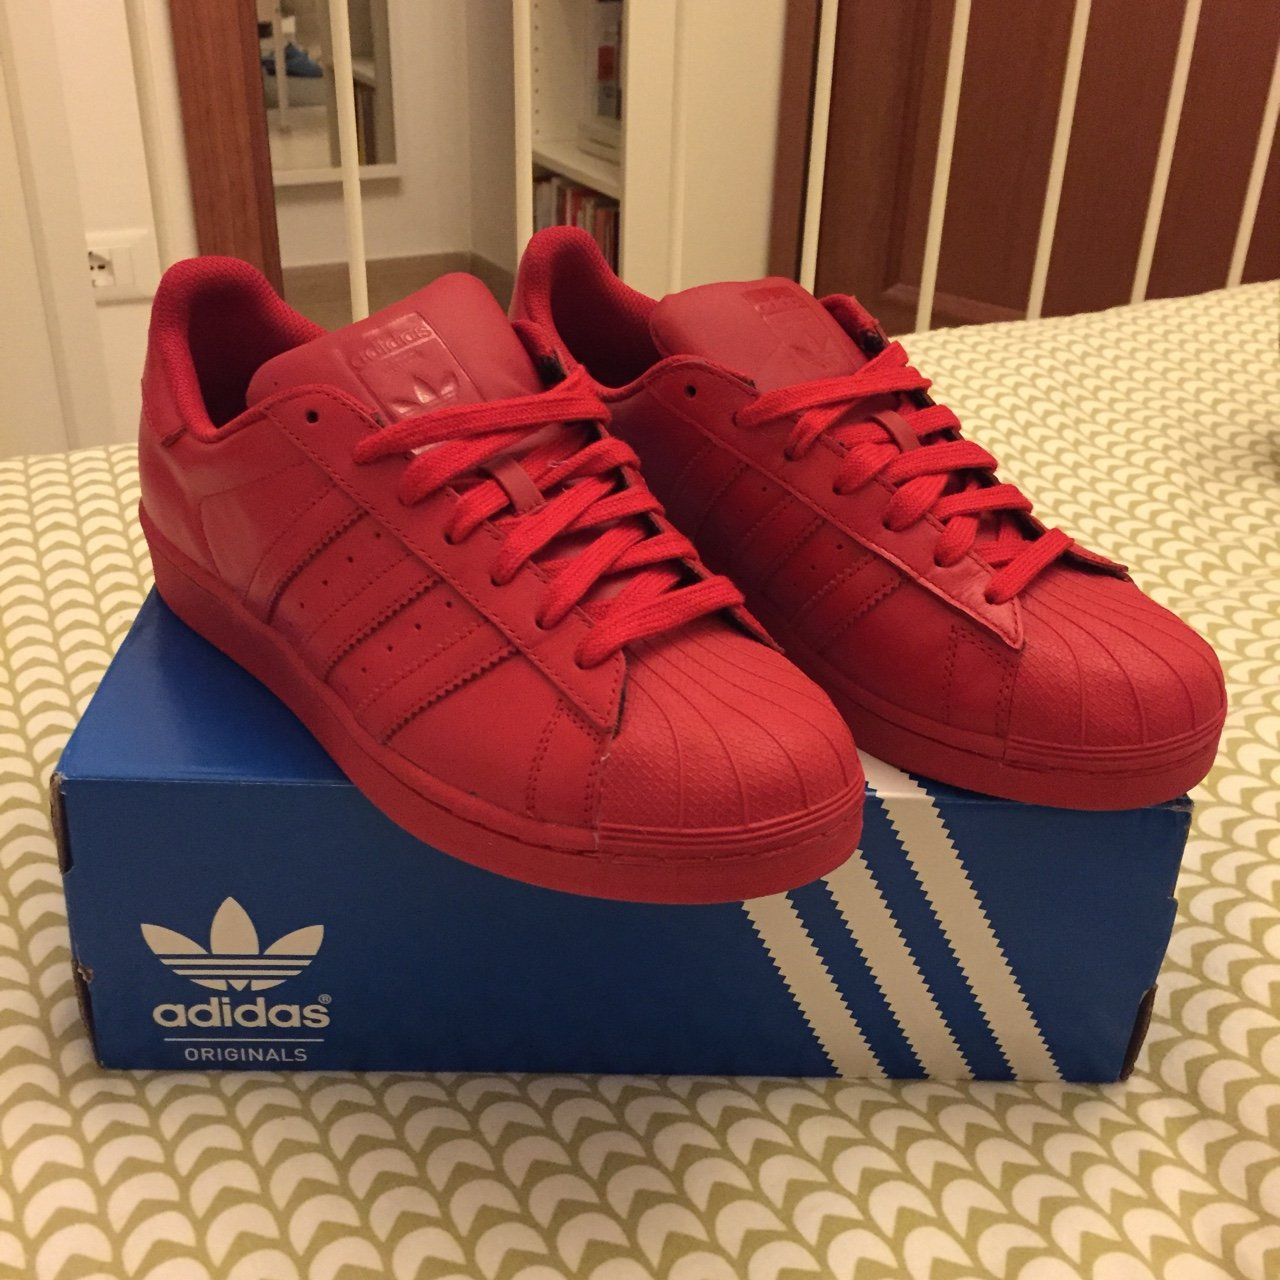 adidas supercolor rosse indossate